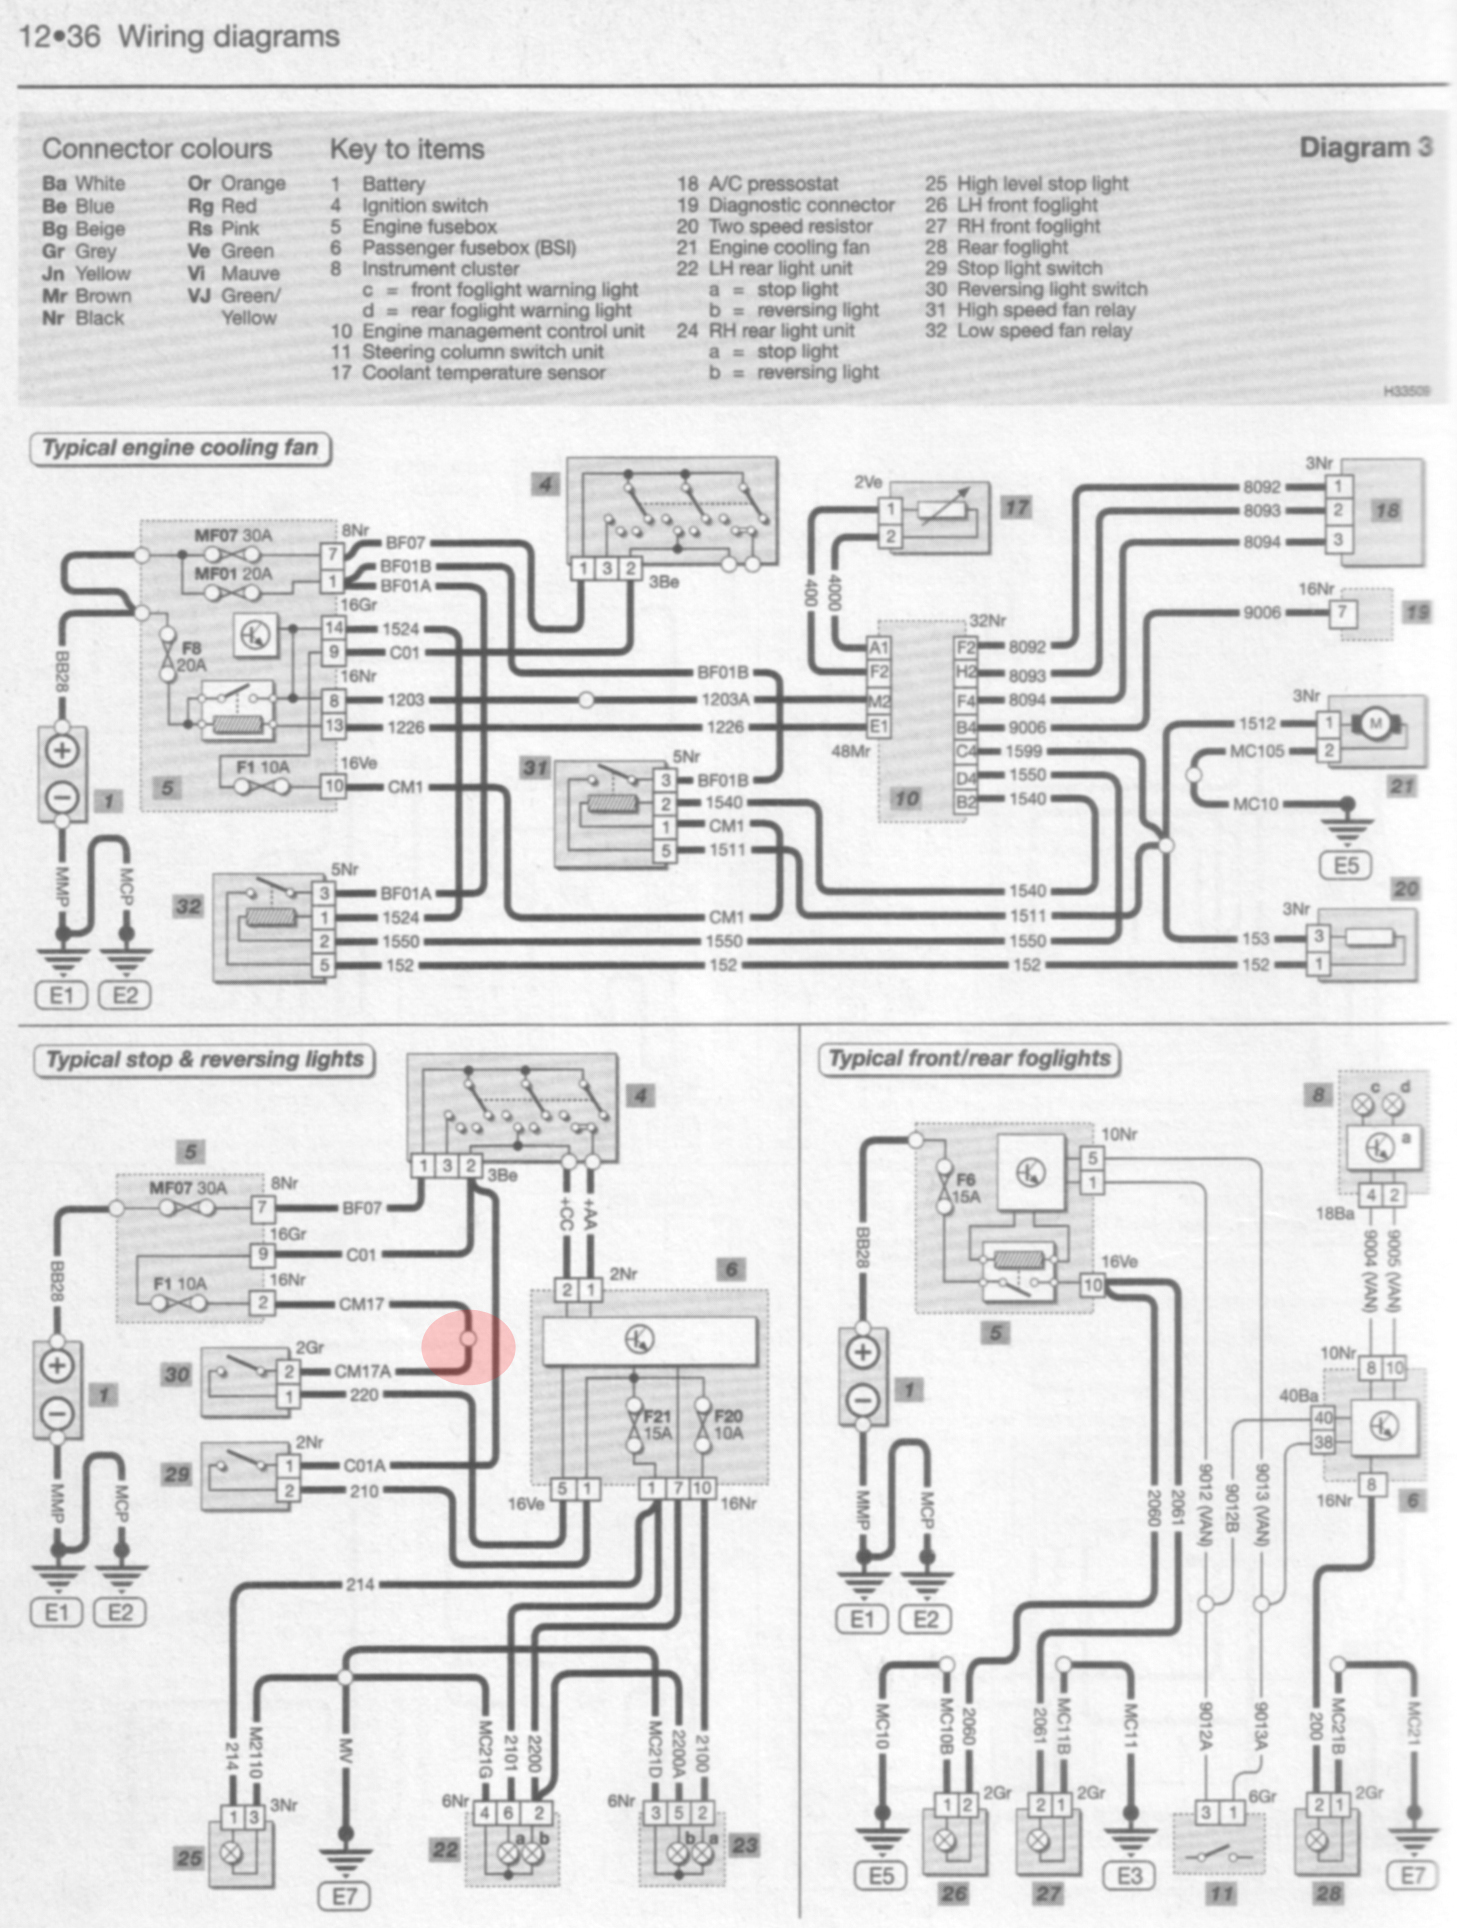 DIAGRAM] Citroen Bsi Wiring Diagram FULL Version HD Quality Wiring Diagram  - AIDDIAGRAMLR.FESTEEBRAICHE.IT | Citroen Cruise Control Diagram |  | Festeebraiche |